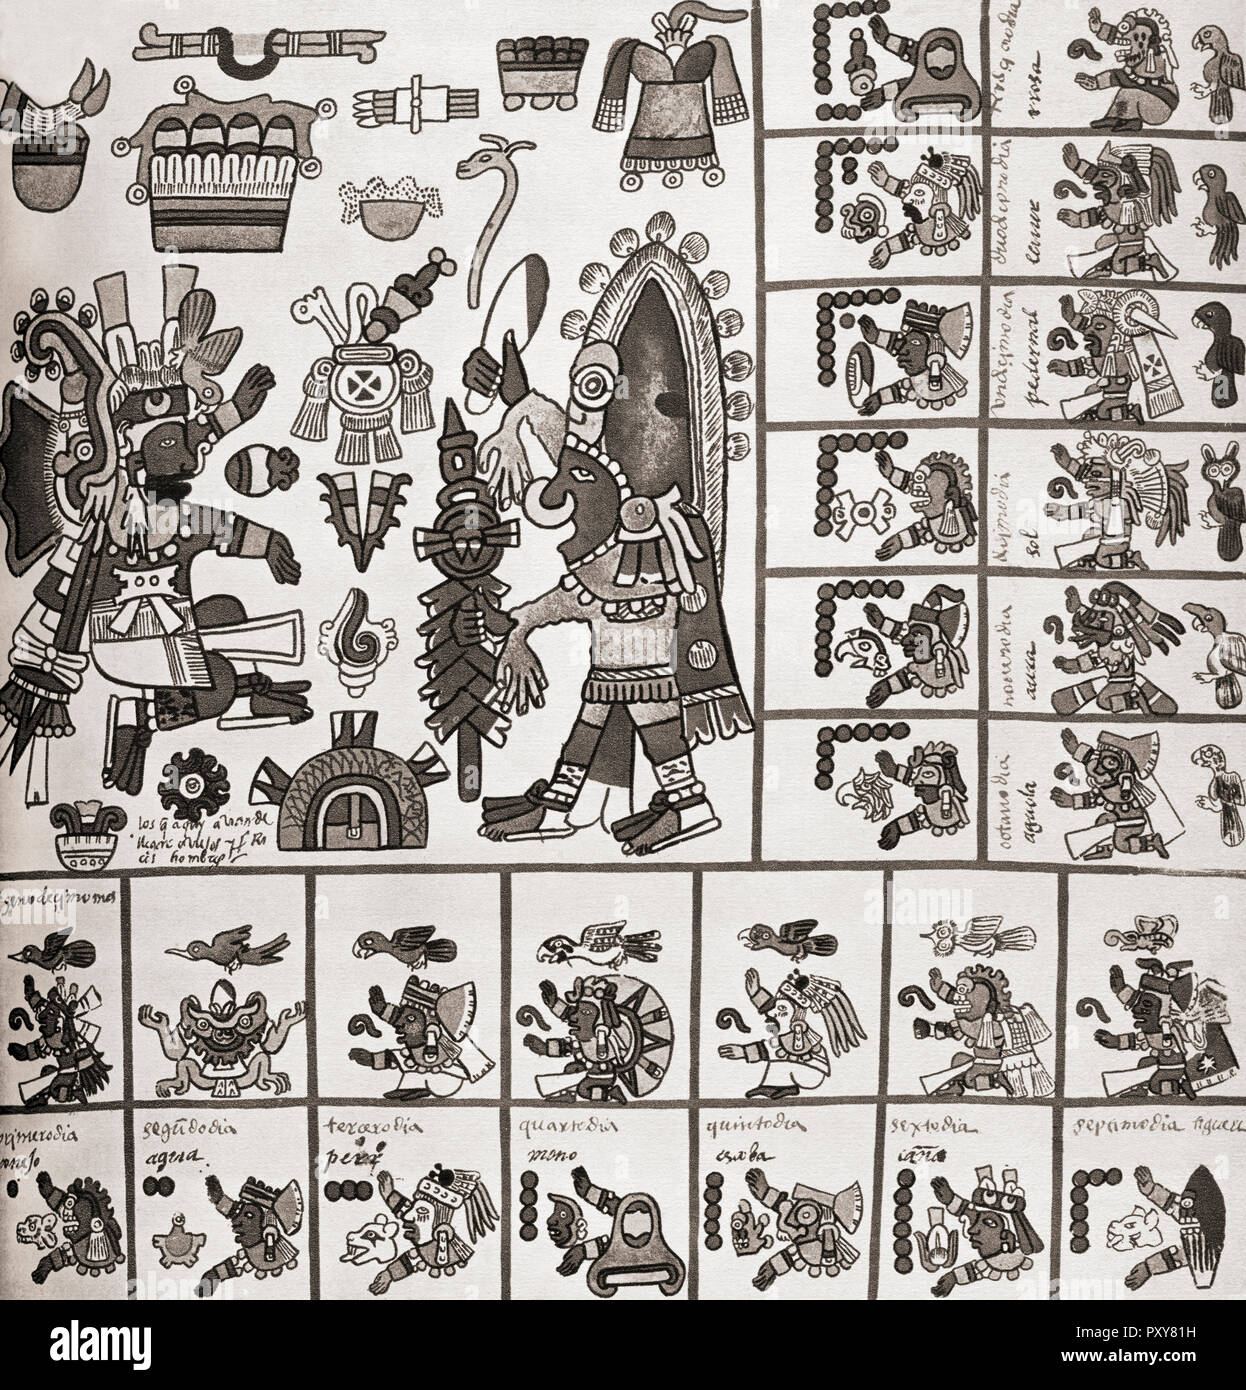 Detail from a fascimile copy of the Codex Borbonicus. The Codex Borbonicus is an Aztec codex written by Aztec priests shortly before or after the Spanish conquest of Mexico in the 16th century. - Stock Image